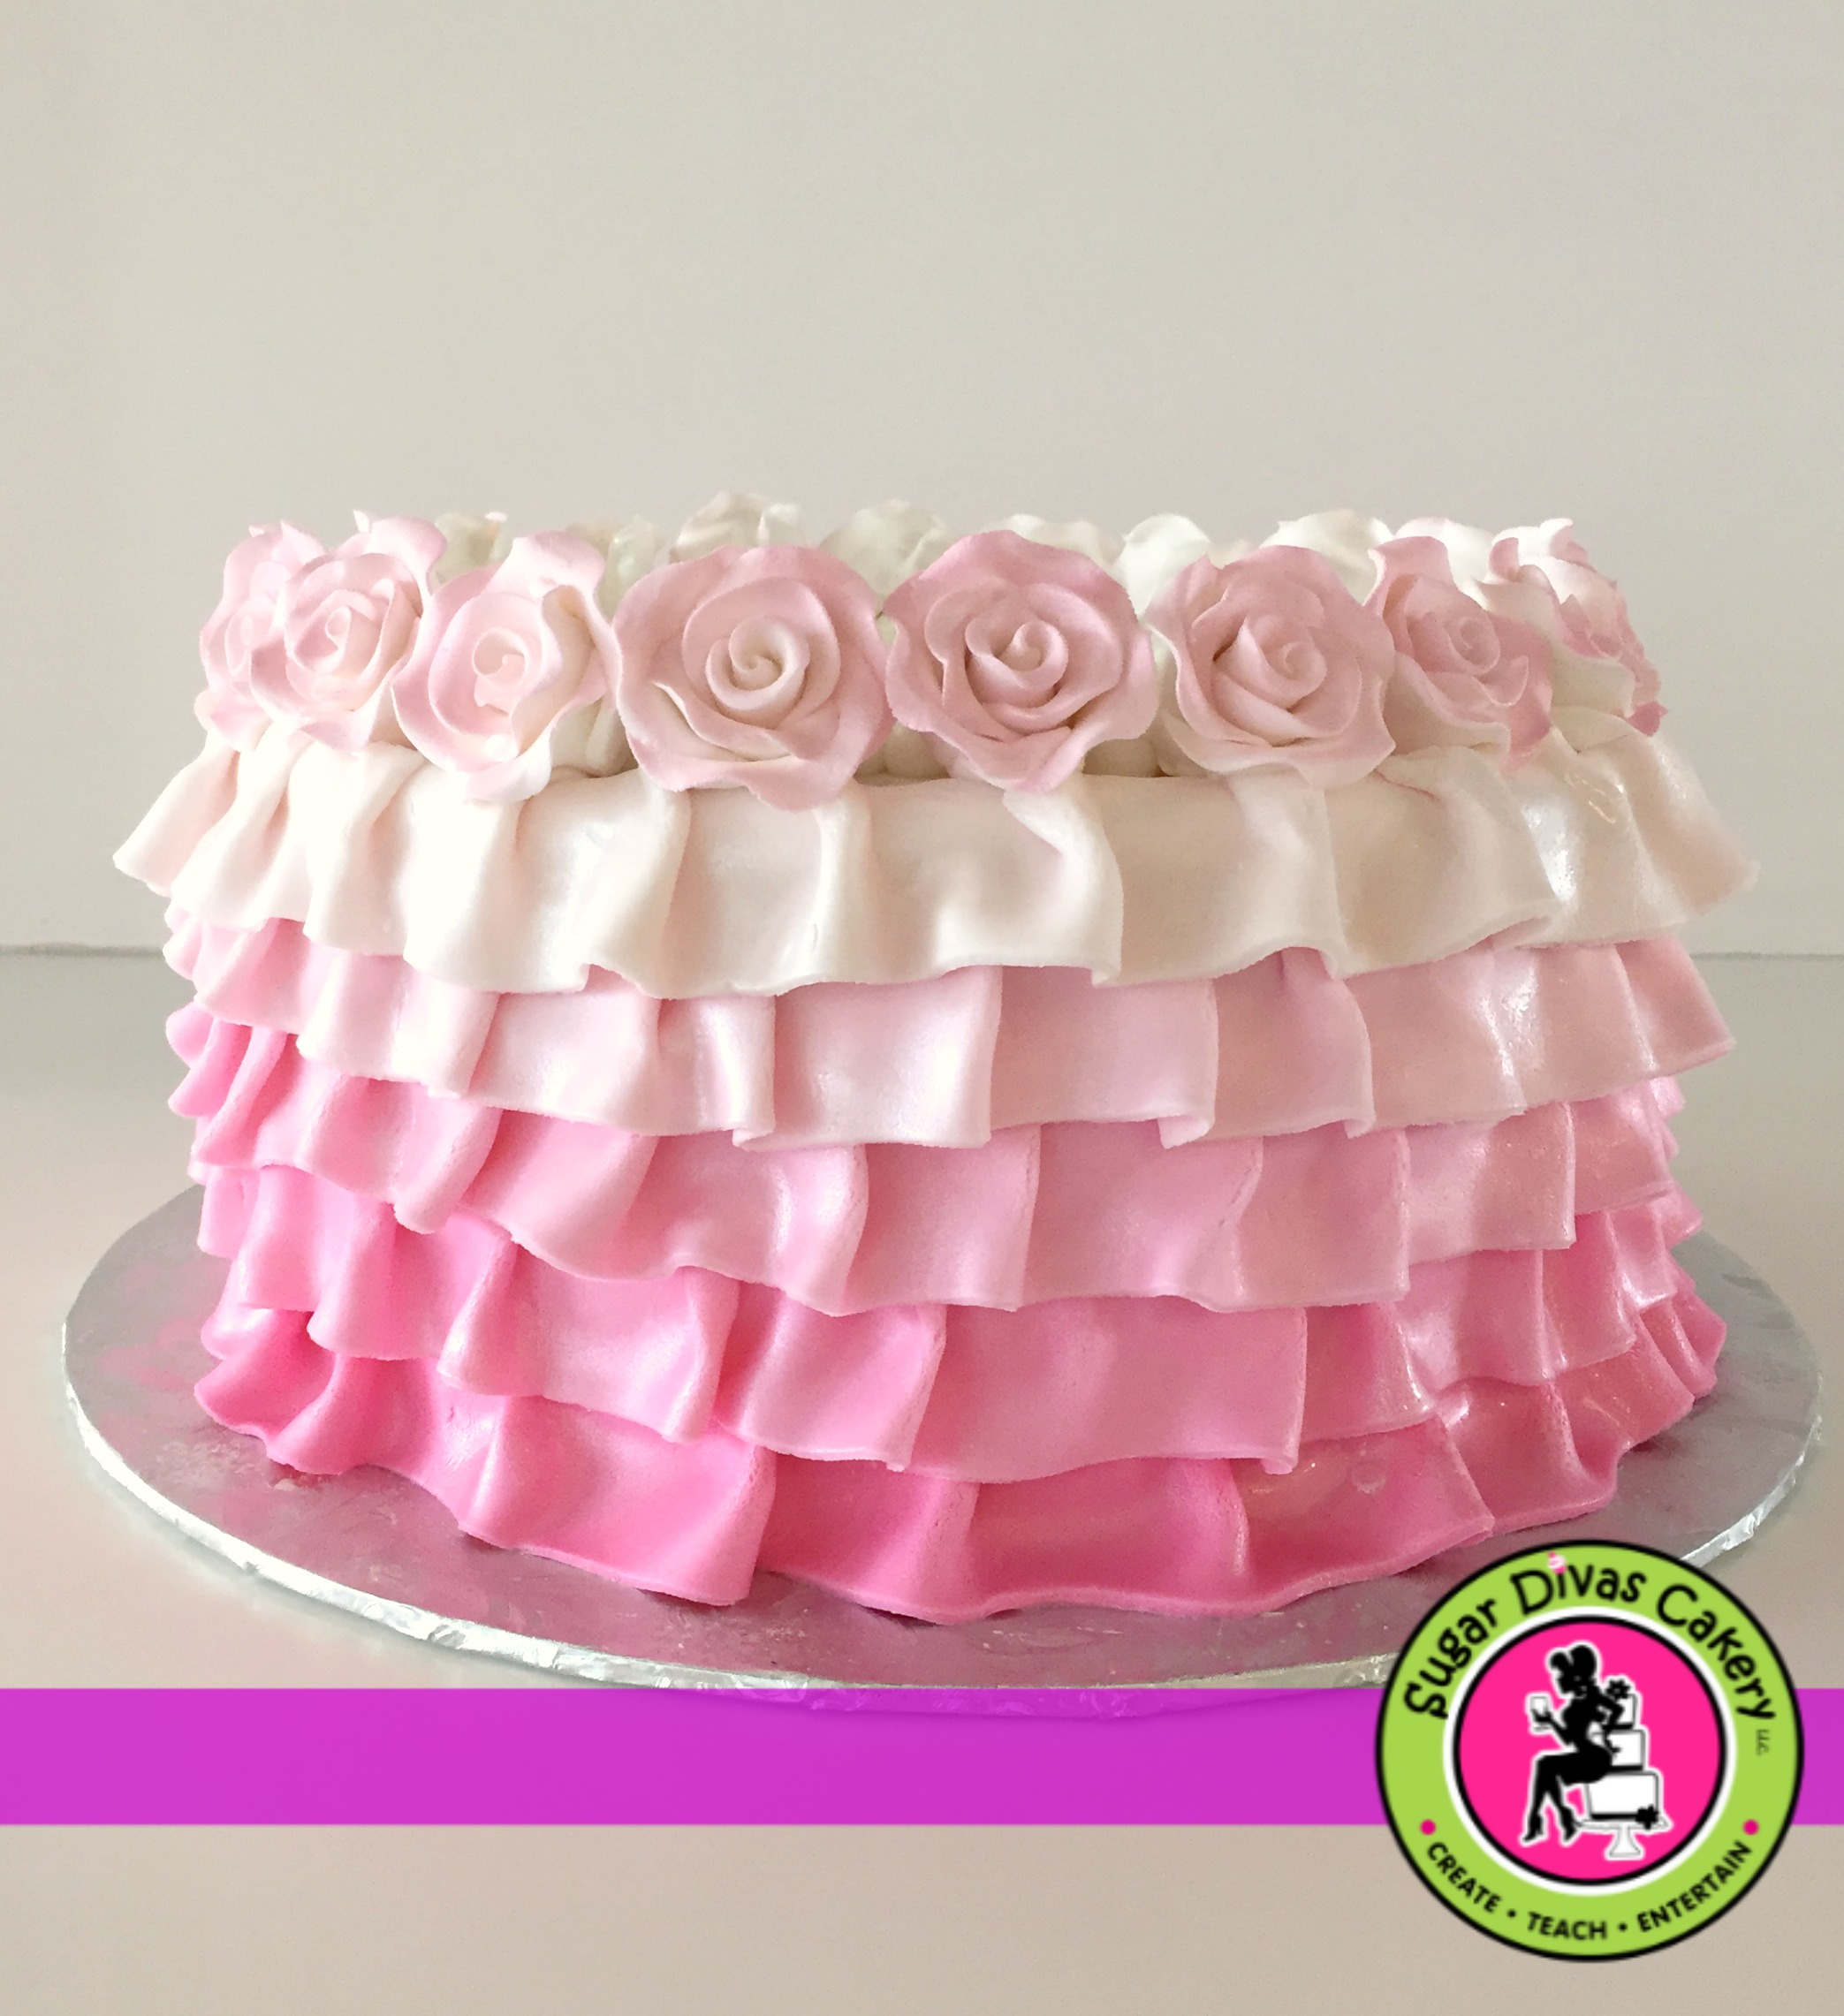 pink ruffles and roses